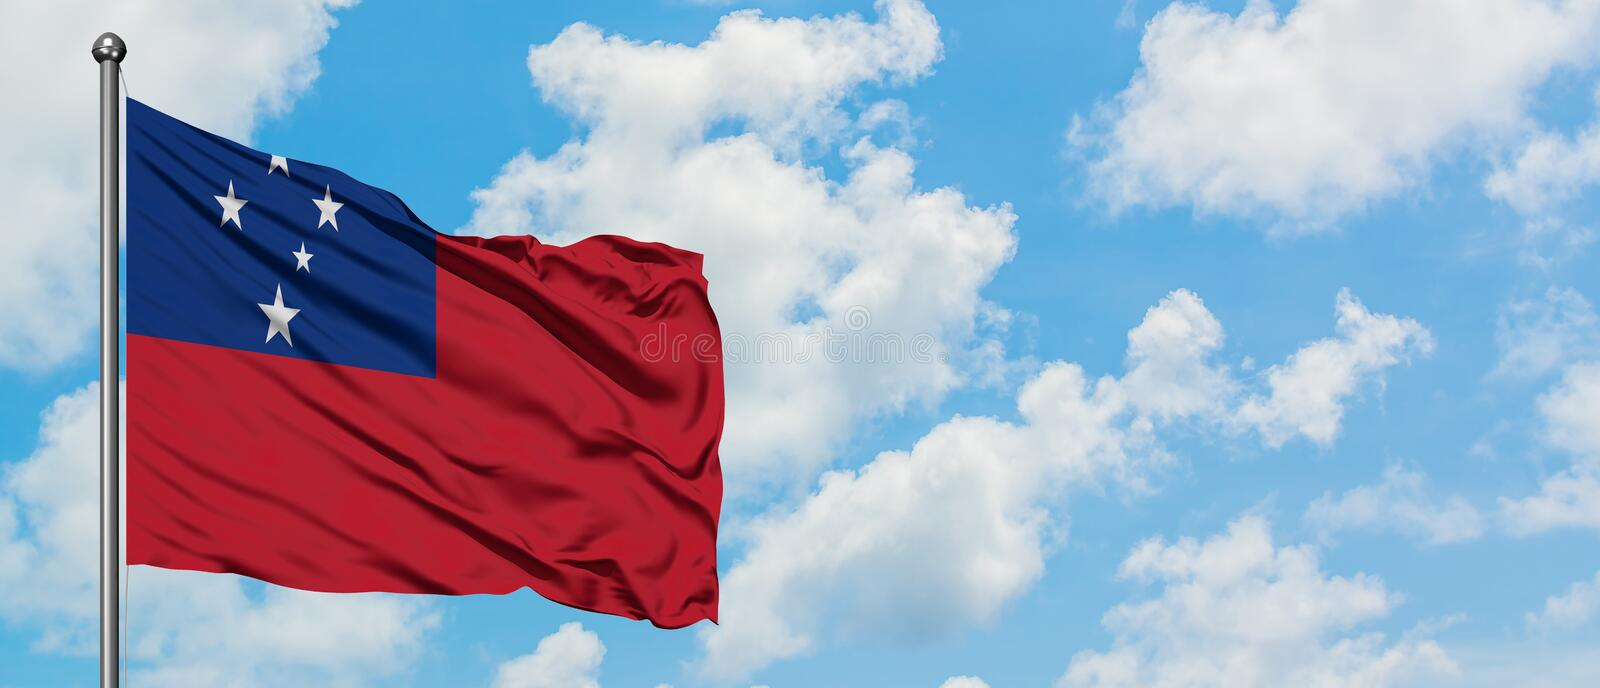 Samoa flag waving in the wind against white cloudy blue sky. Diplomacy concept, international relations.  royalty free stock photography